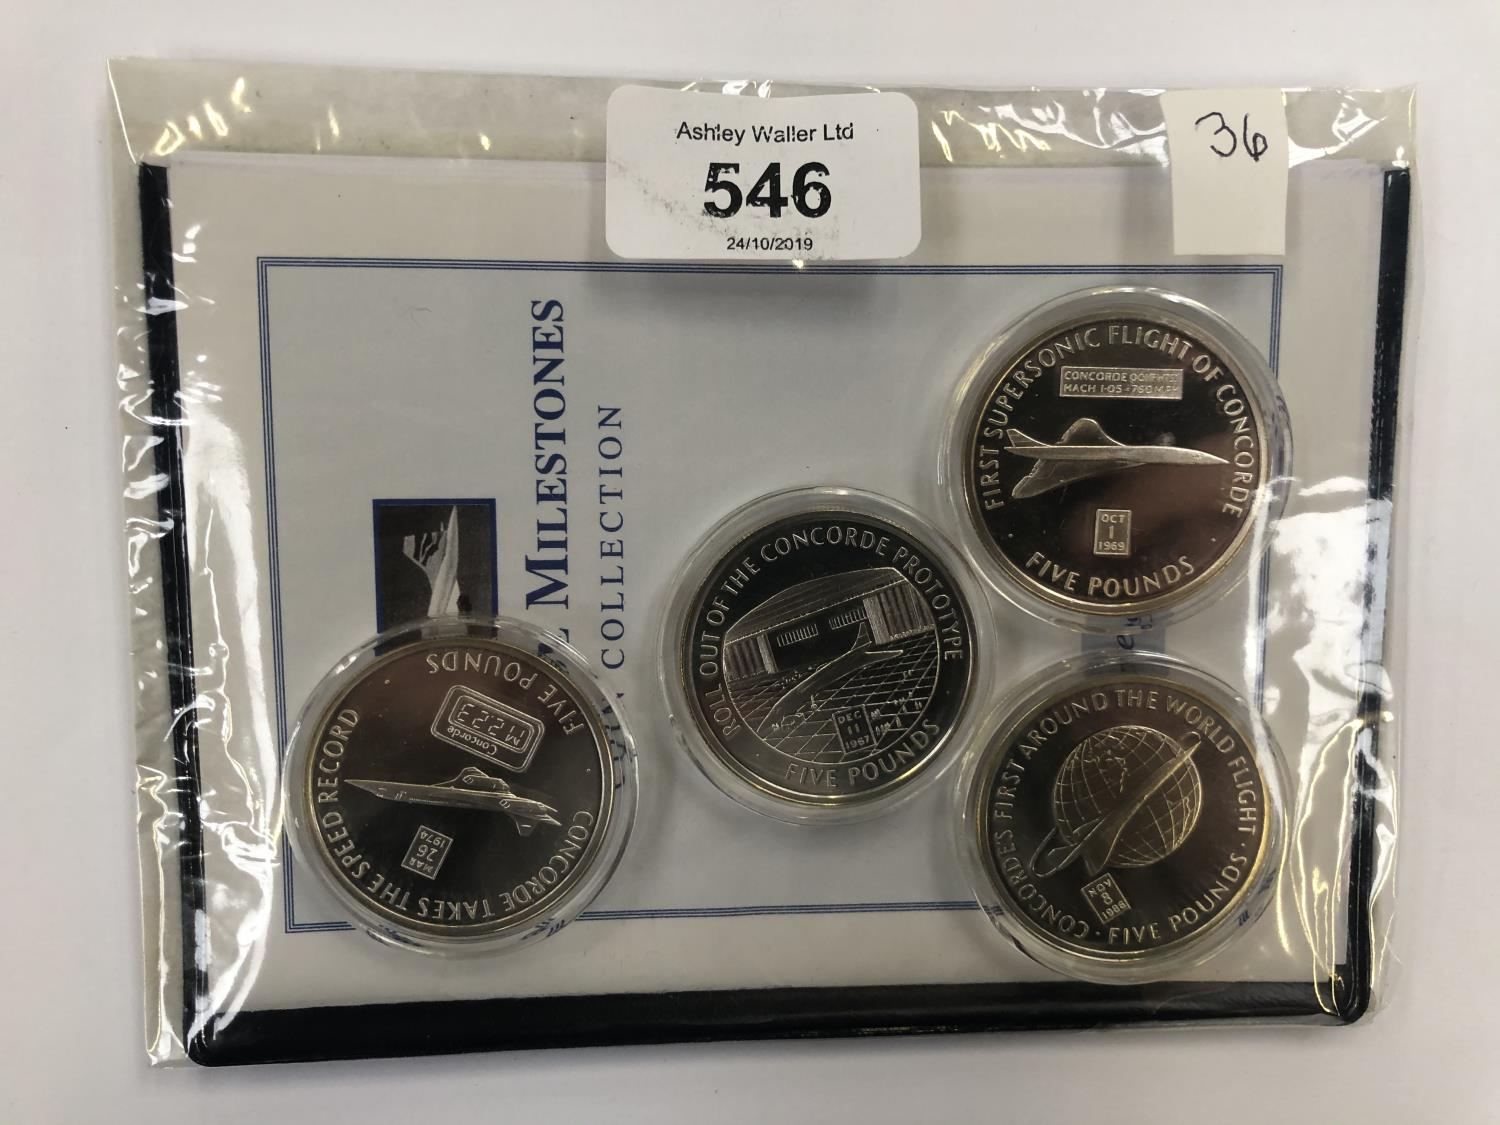 Lot 546 - ?CONCORDE MILESTONES? COIN COLLECTION , COMPRISING FOUR SILVER PROOF COINS . EACH COIN IS £5 IN